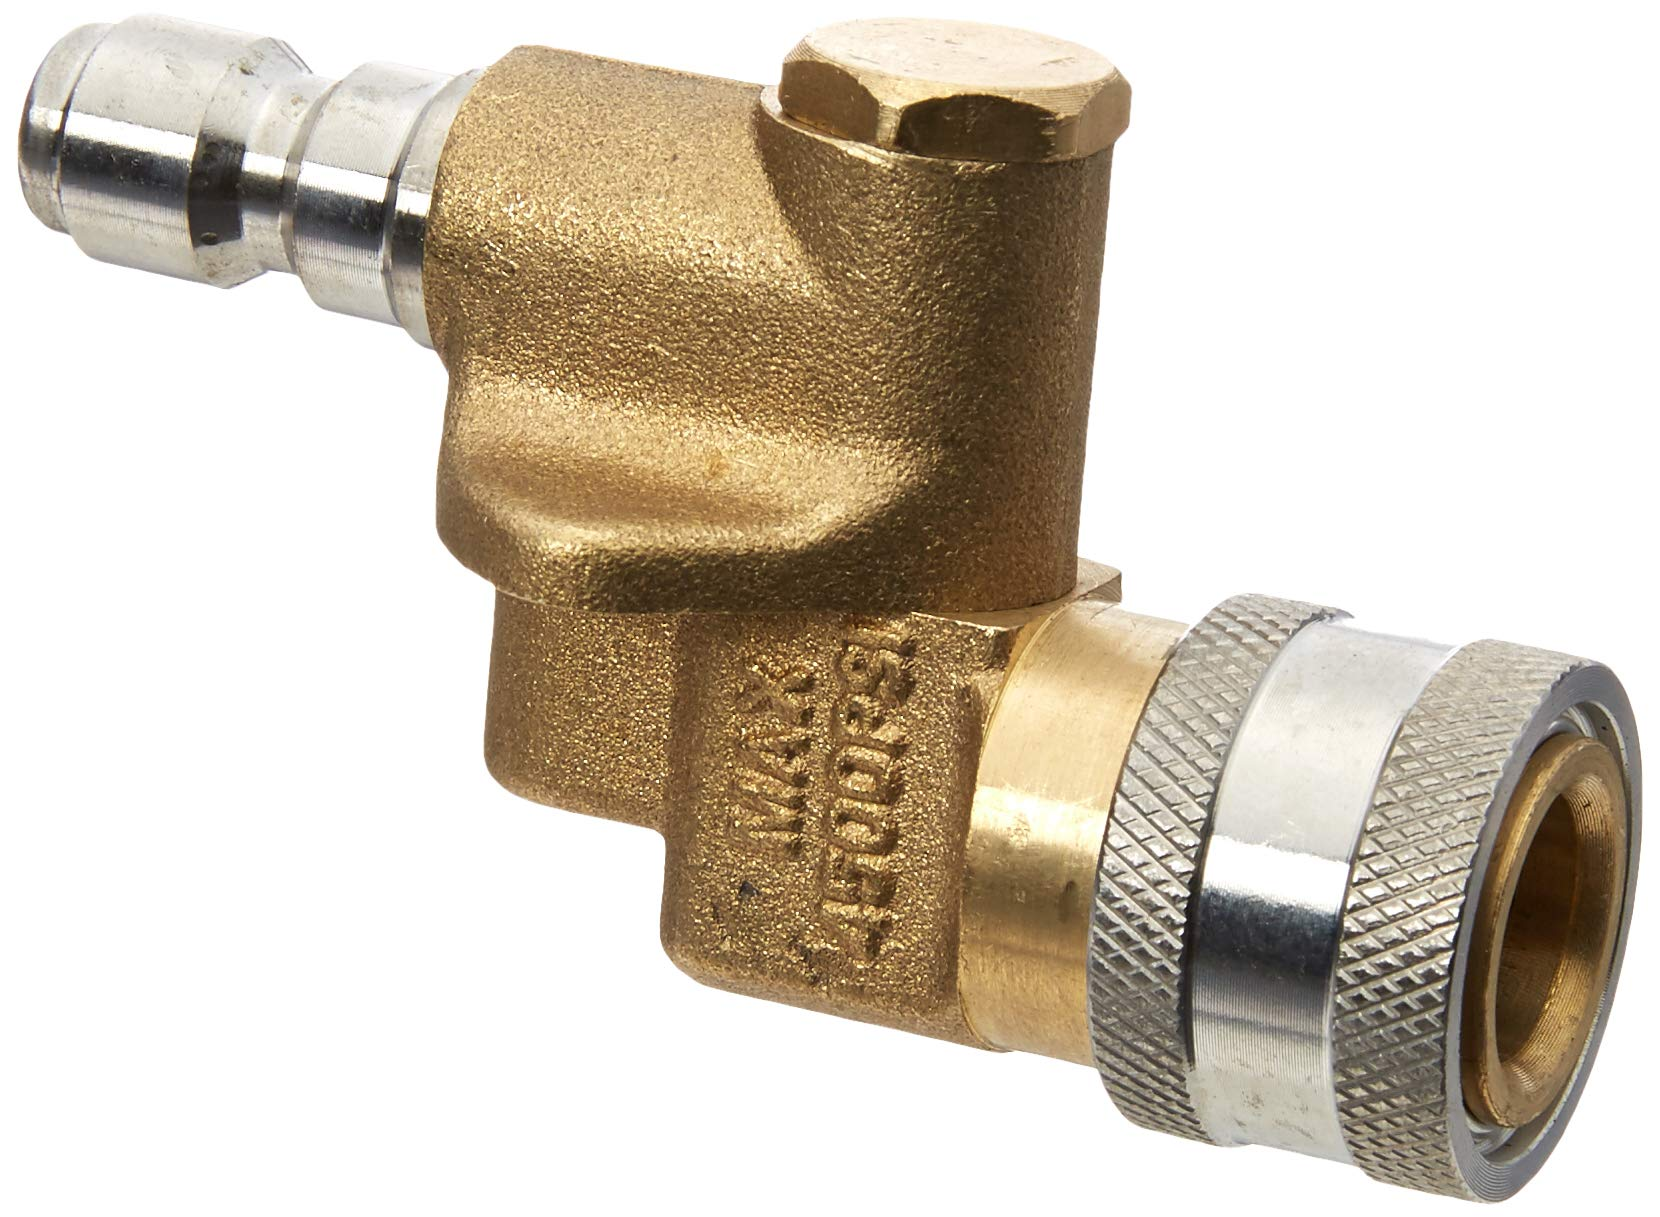 AR North America, PW-QC14PIVOT Pressure Washer Pivot Coupler Nozzle Adaptor of 1/4'' & Quick Connect Fits Most Lances, Spray Guns & Accessories, Brass by AR ANNOVI REVERBERI